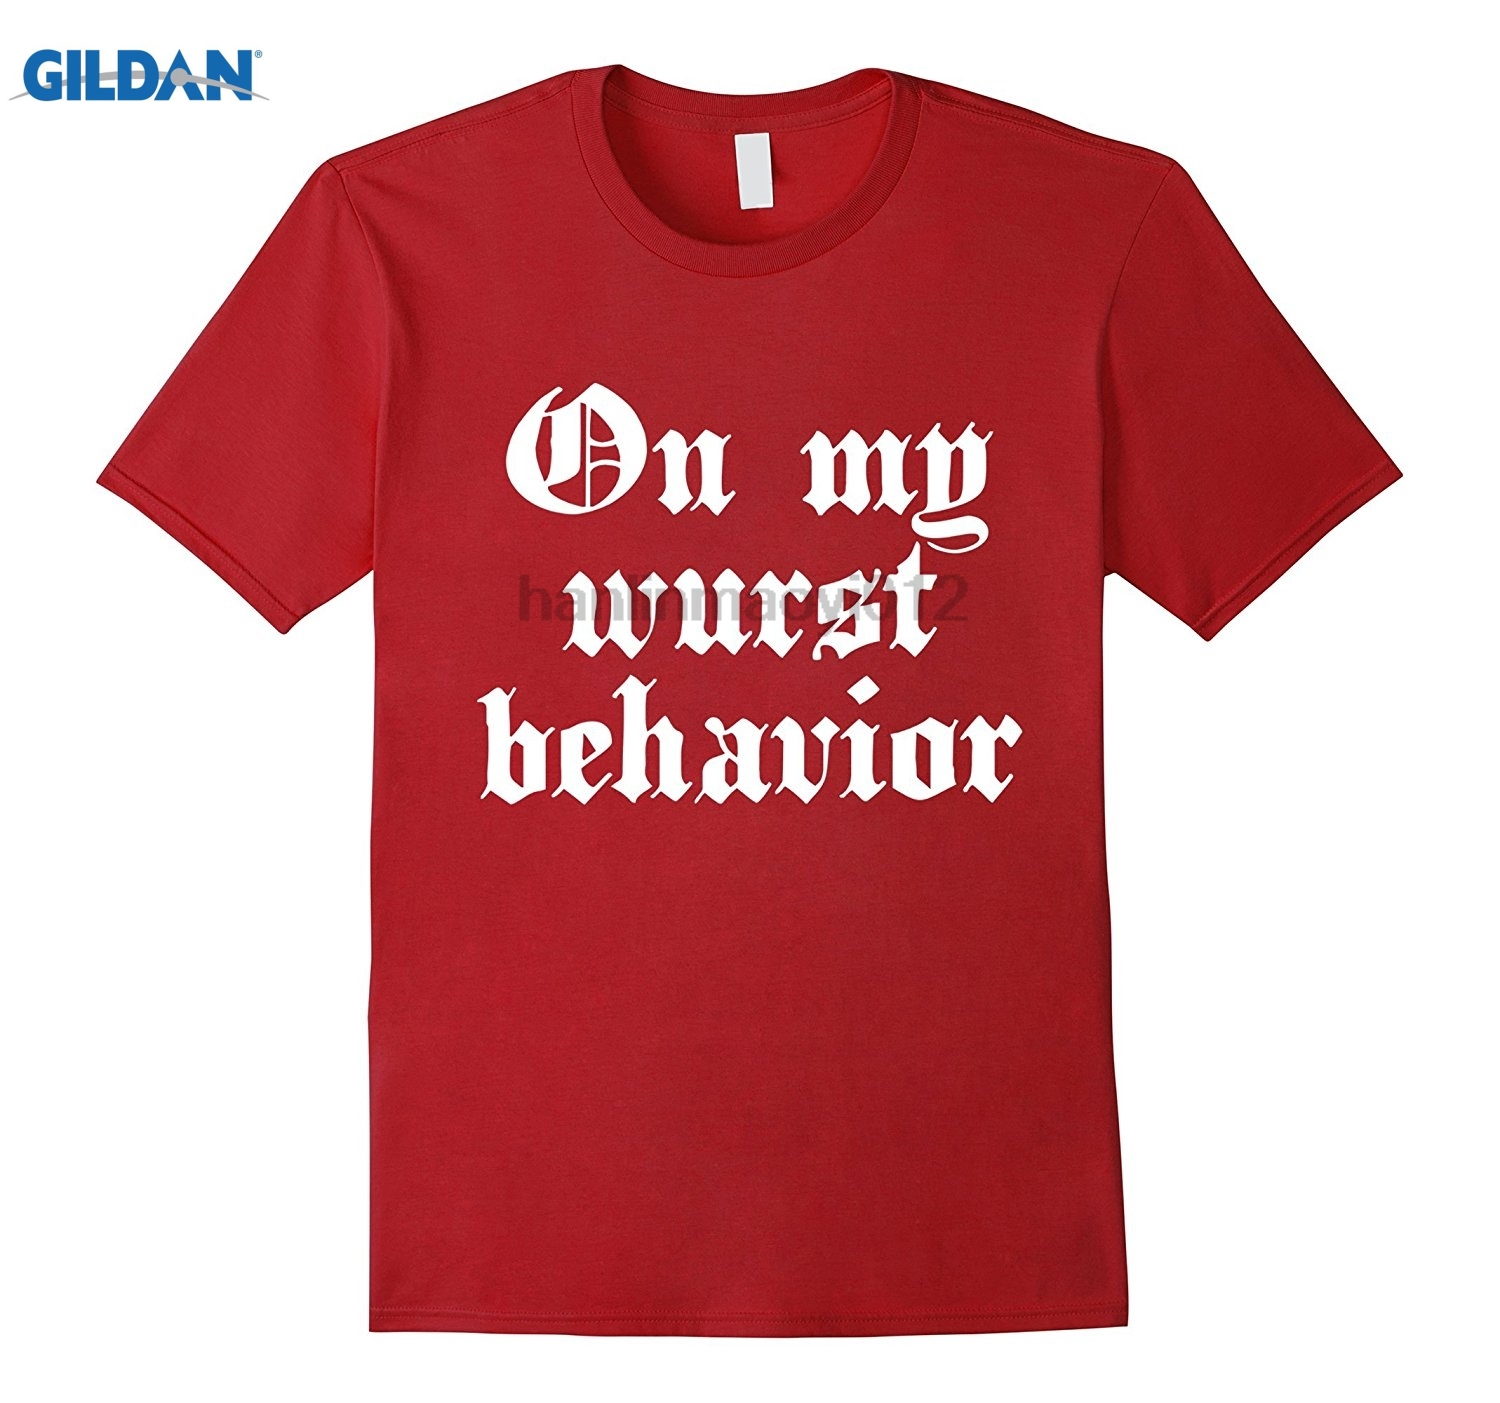 GILDAN Funny Oktoberfest T-shirt, On My Wurst Behavior Dress female T-shirt ...